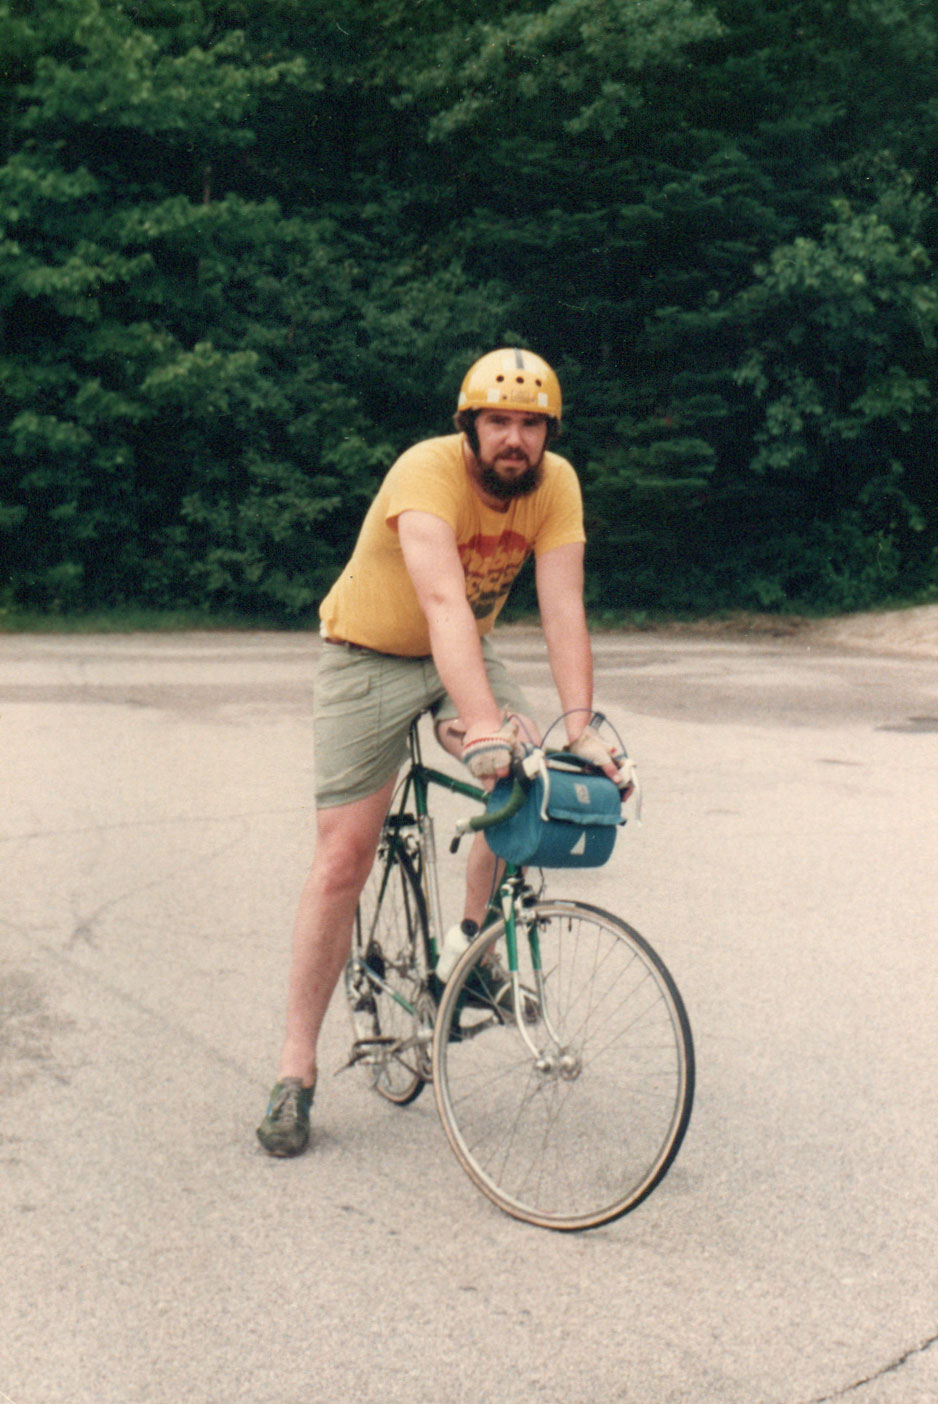 Me around 1976 or so riding the Kancamagus Highway in New Hampshire.